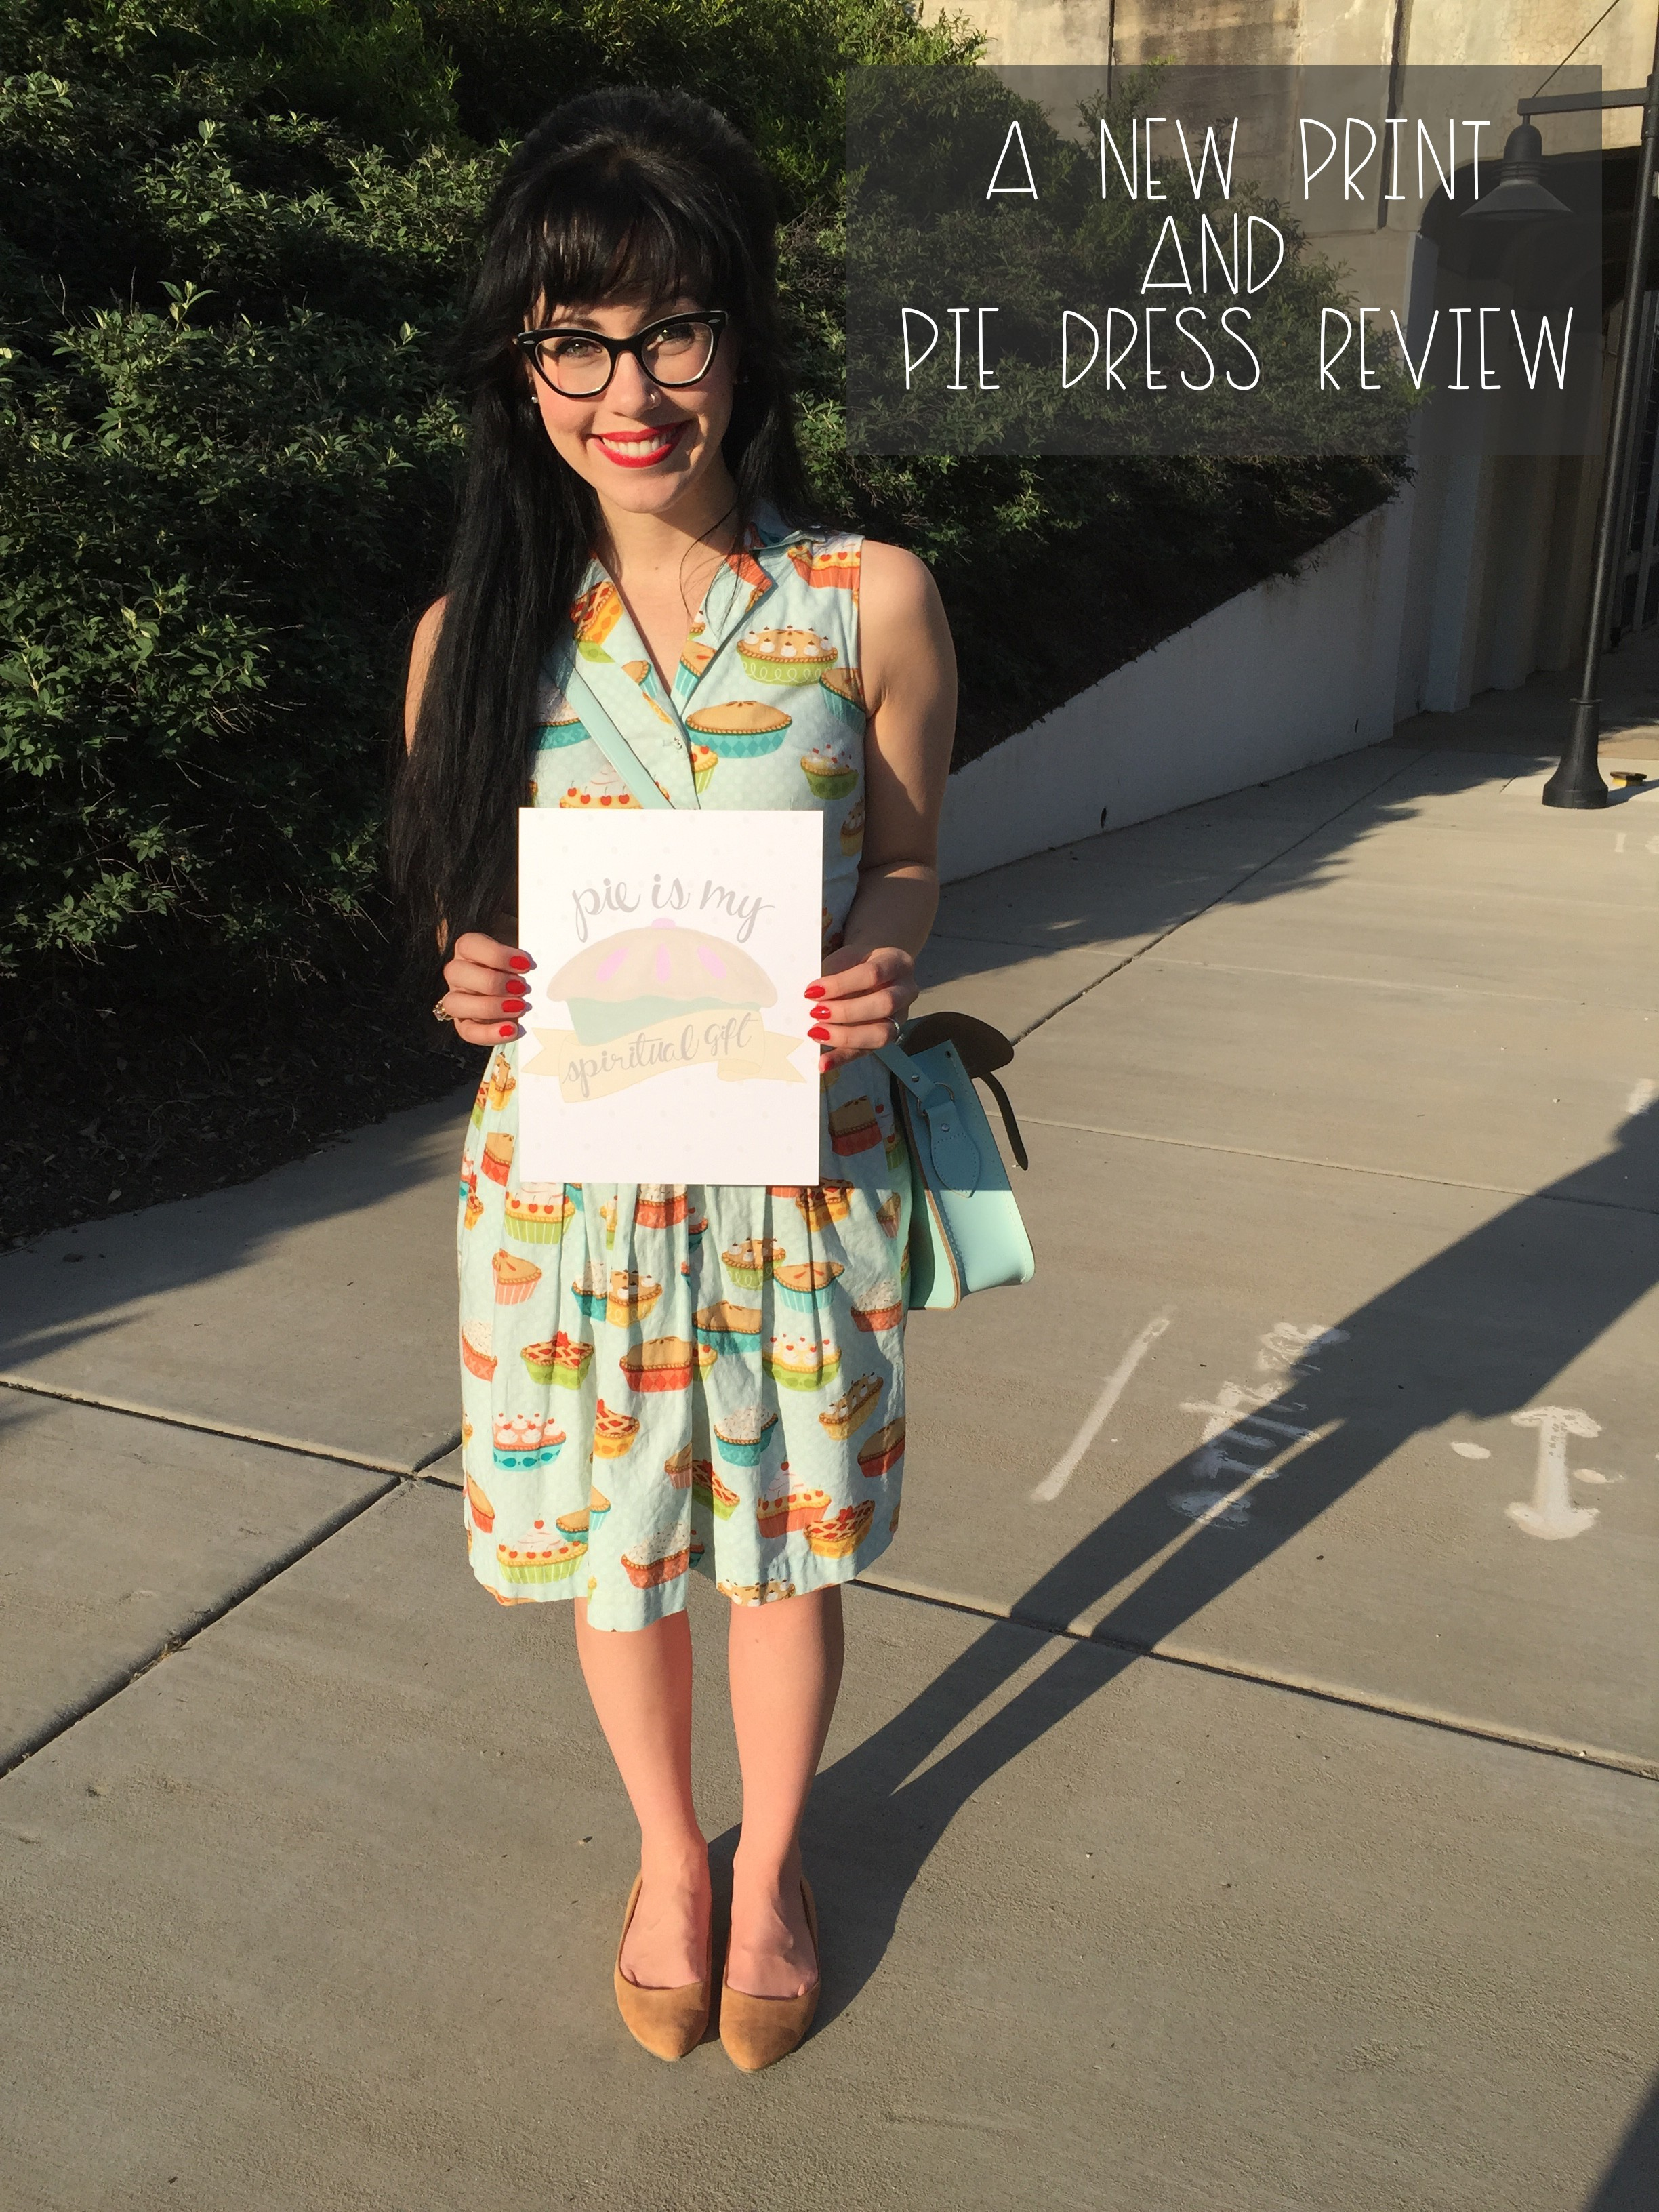 A New Print & Pie Dress Review